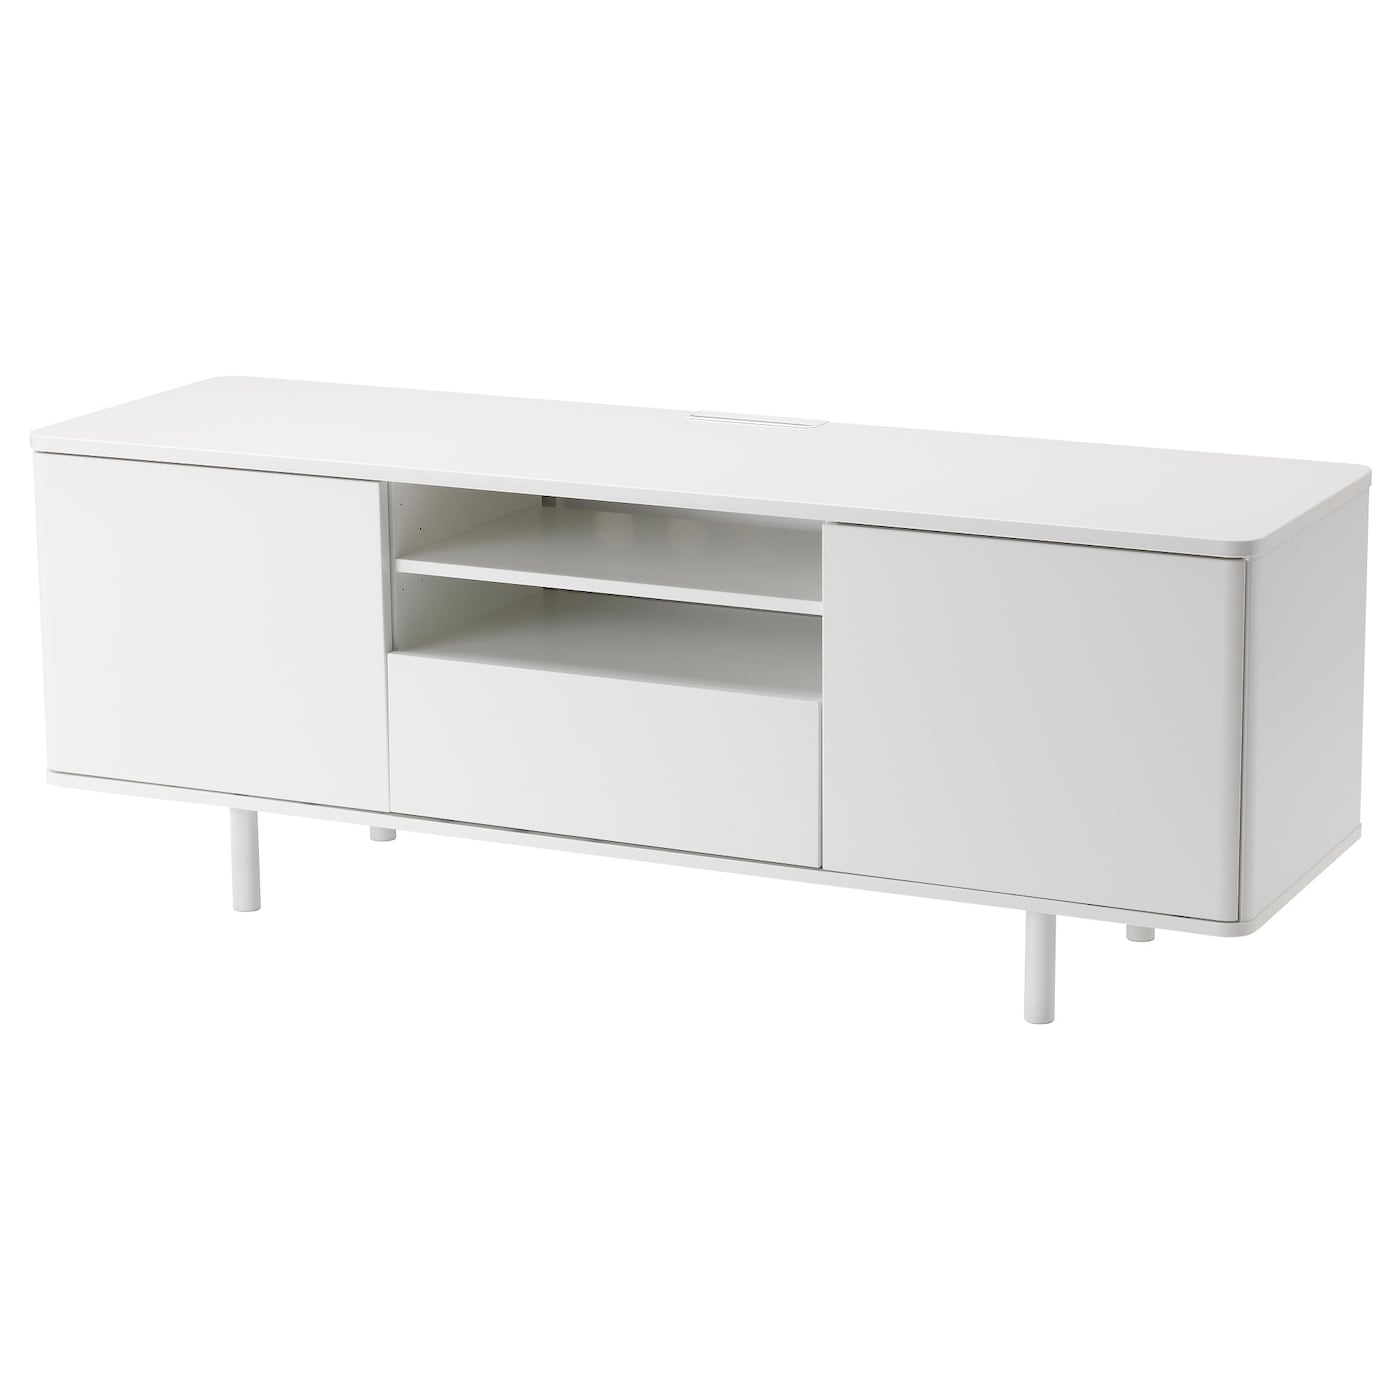 Tv Benches Ikea Ireland # Ikea Meuble Tv Besta Burs